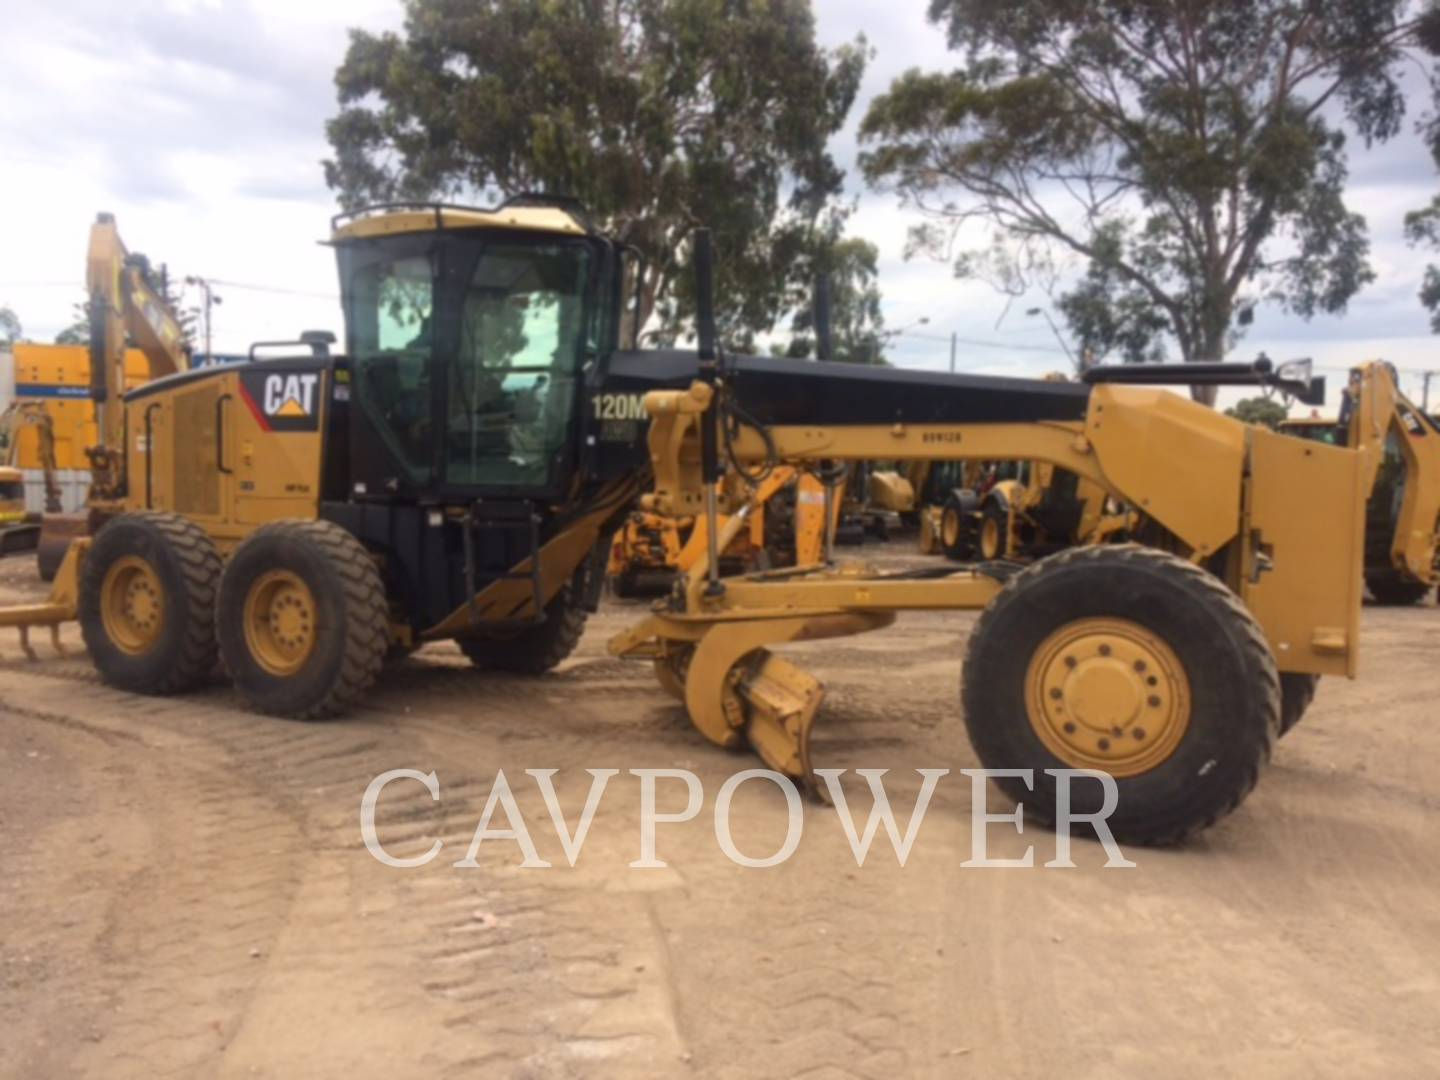 CATERPILLAR 120MAWD Page | Cavpower